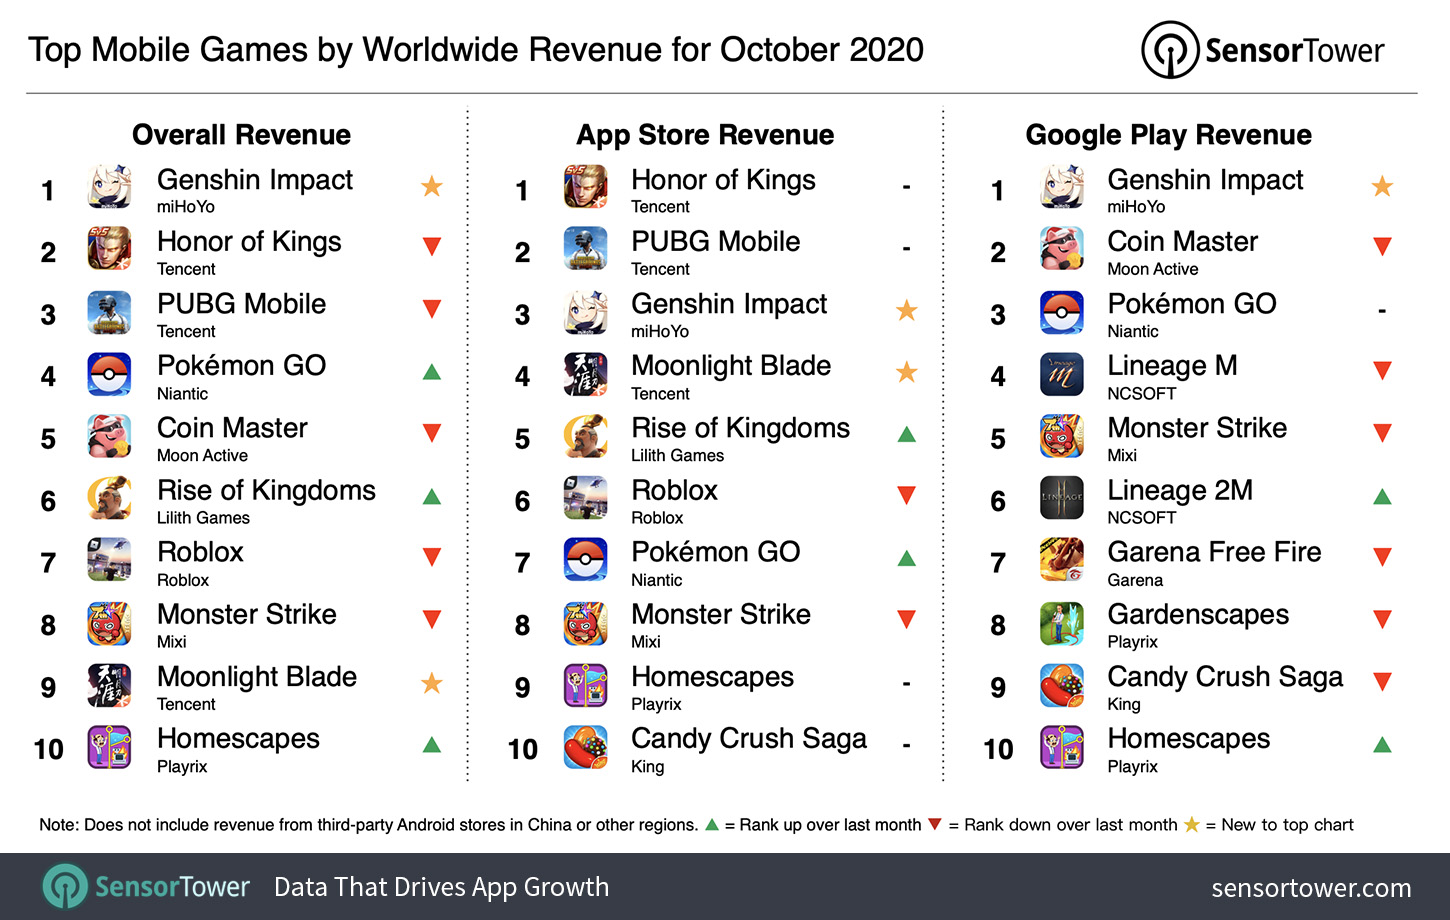 Top Grossing Mobile Games Worldwide for October 2020